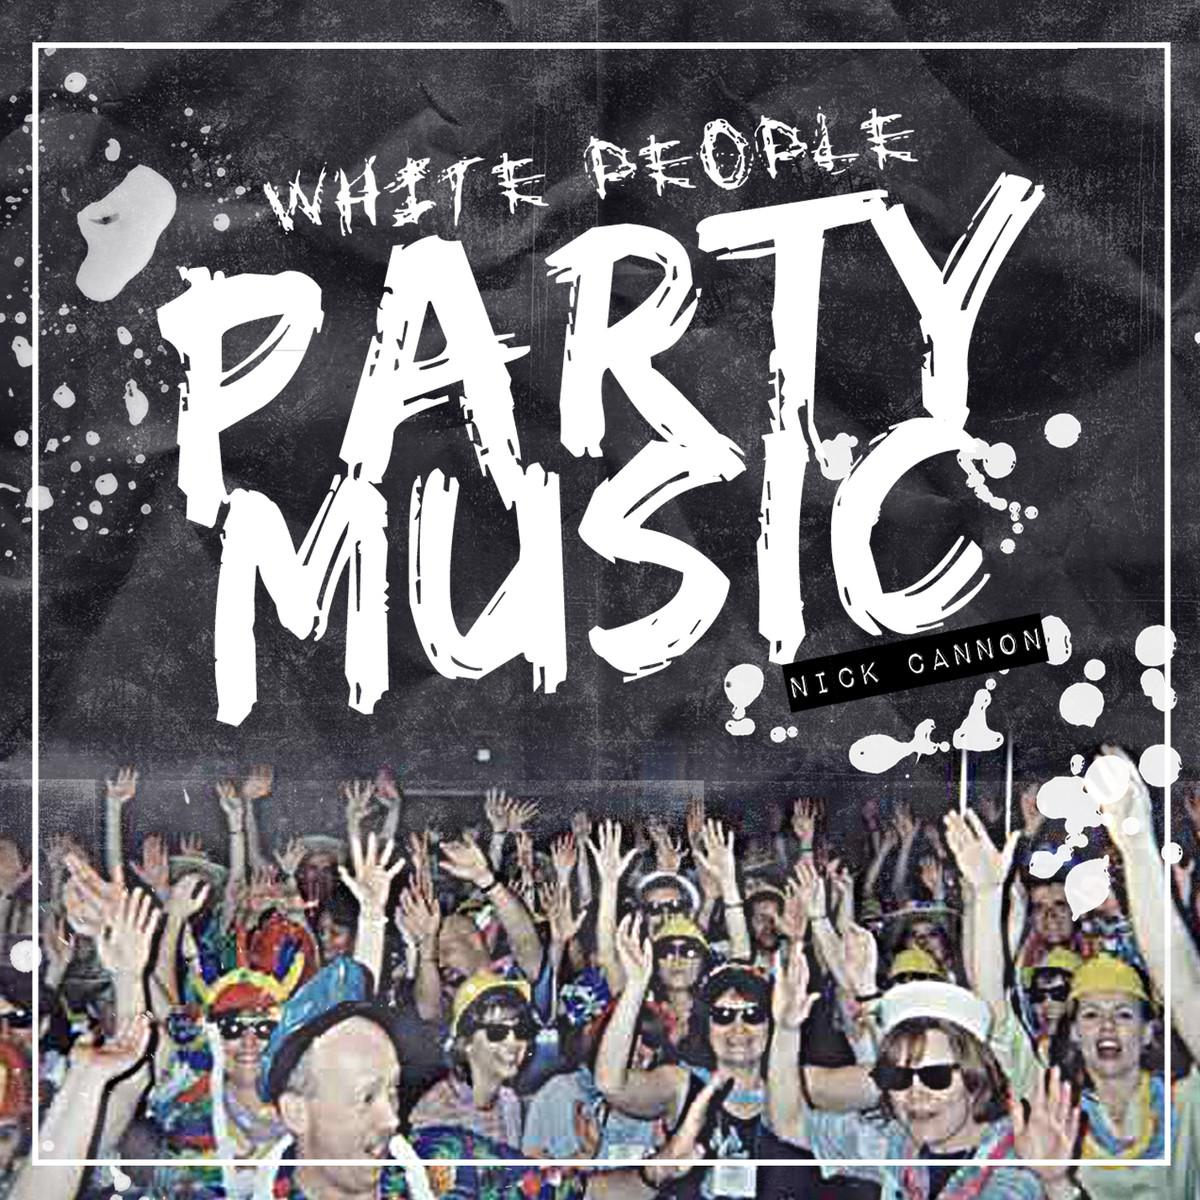 Nick Cannon - White People Party Music (2014)